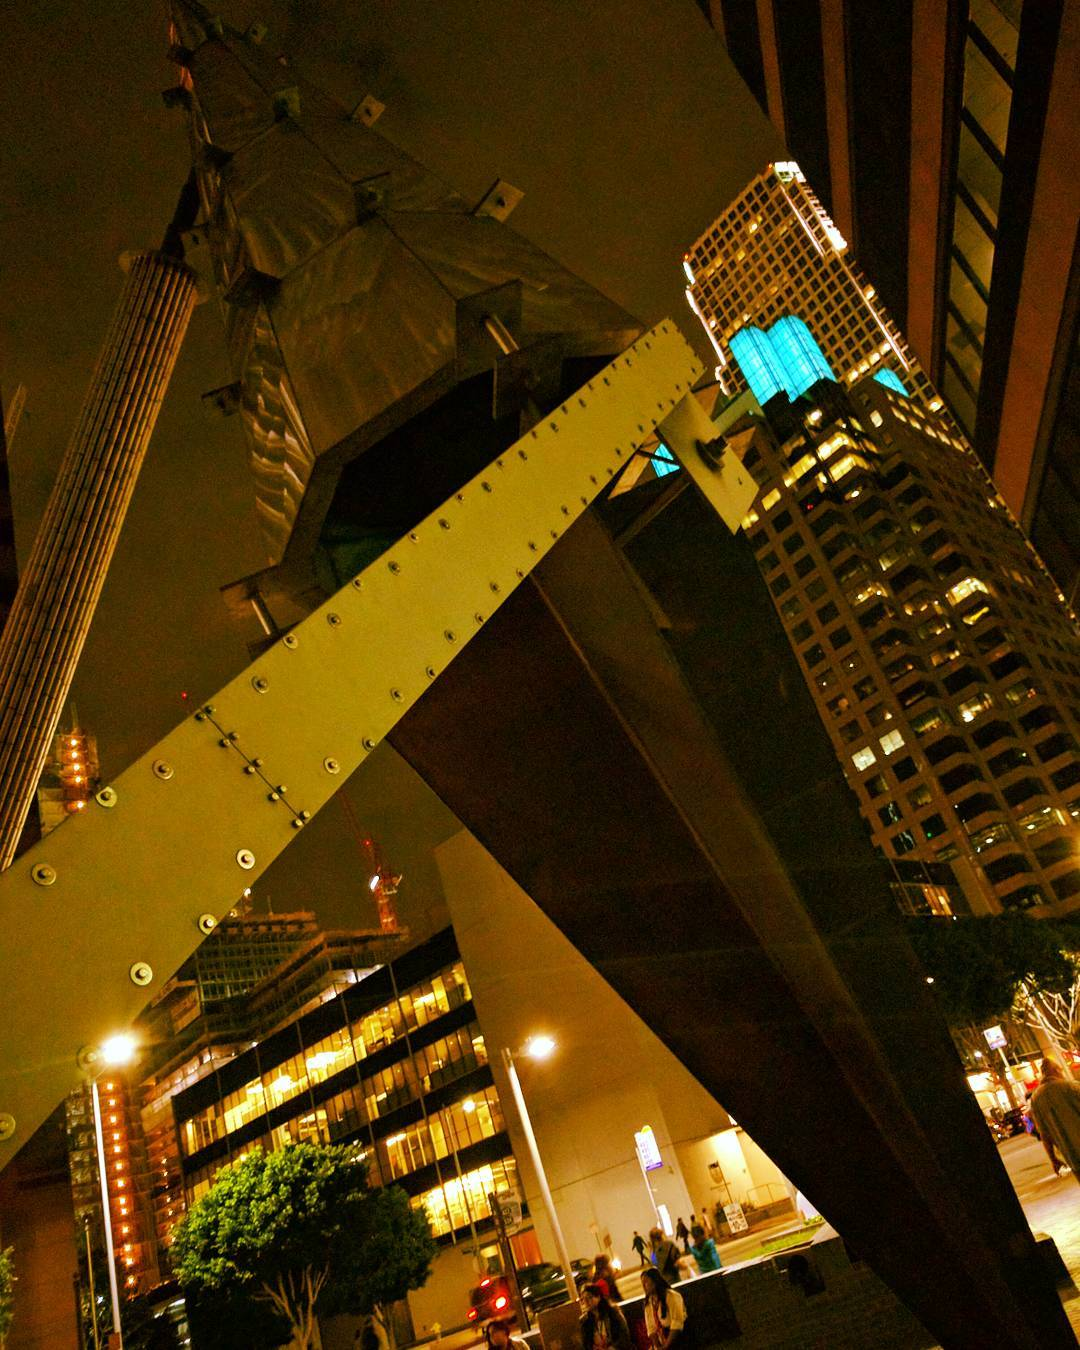 Not your typical view of Downtown LA at night.  #losangeles #downtownla #sculpture